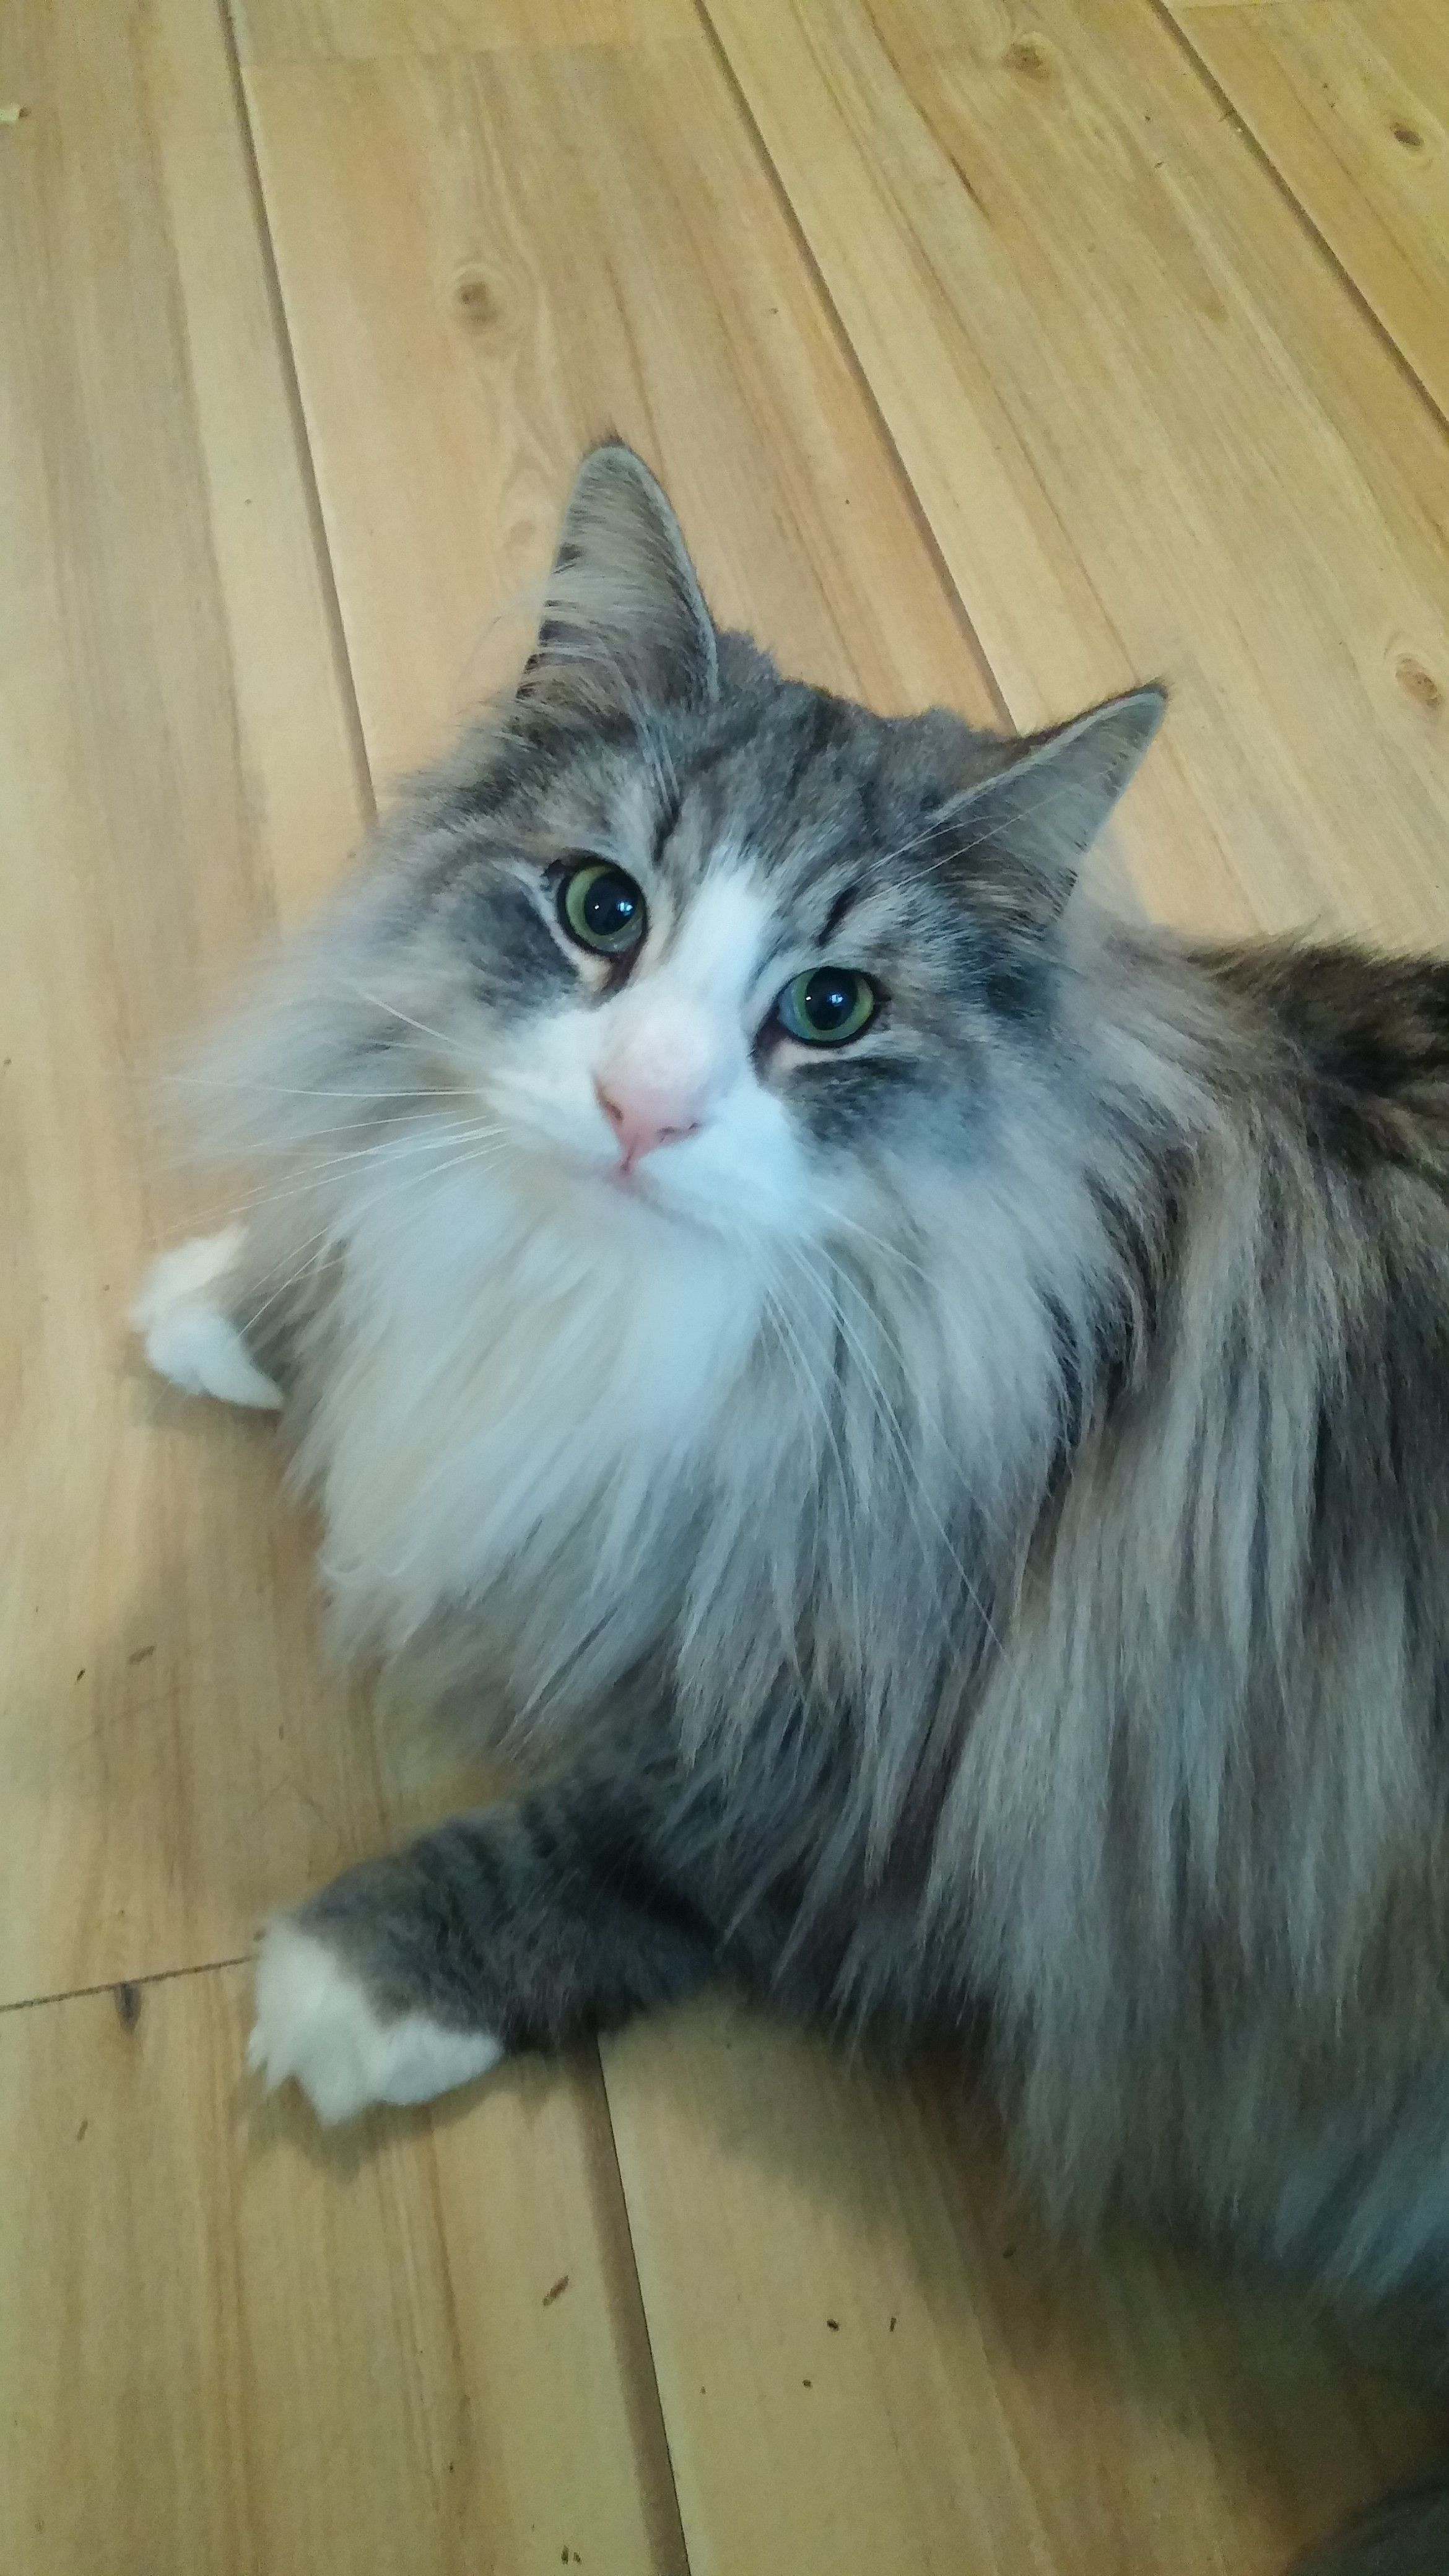 Odin, blotched silver tabby with white Norwegian Forest Cat